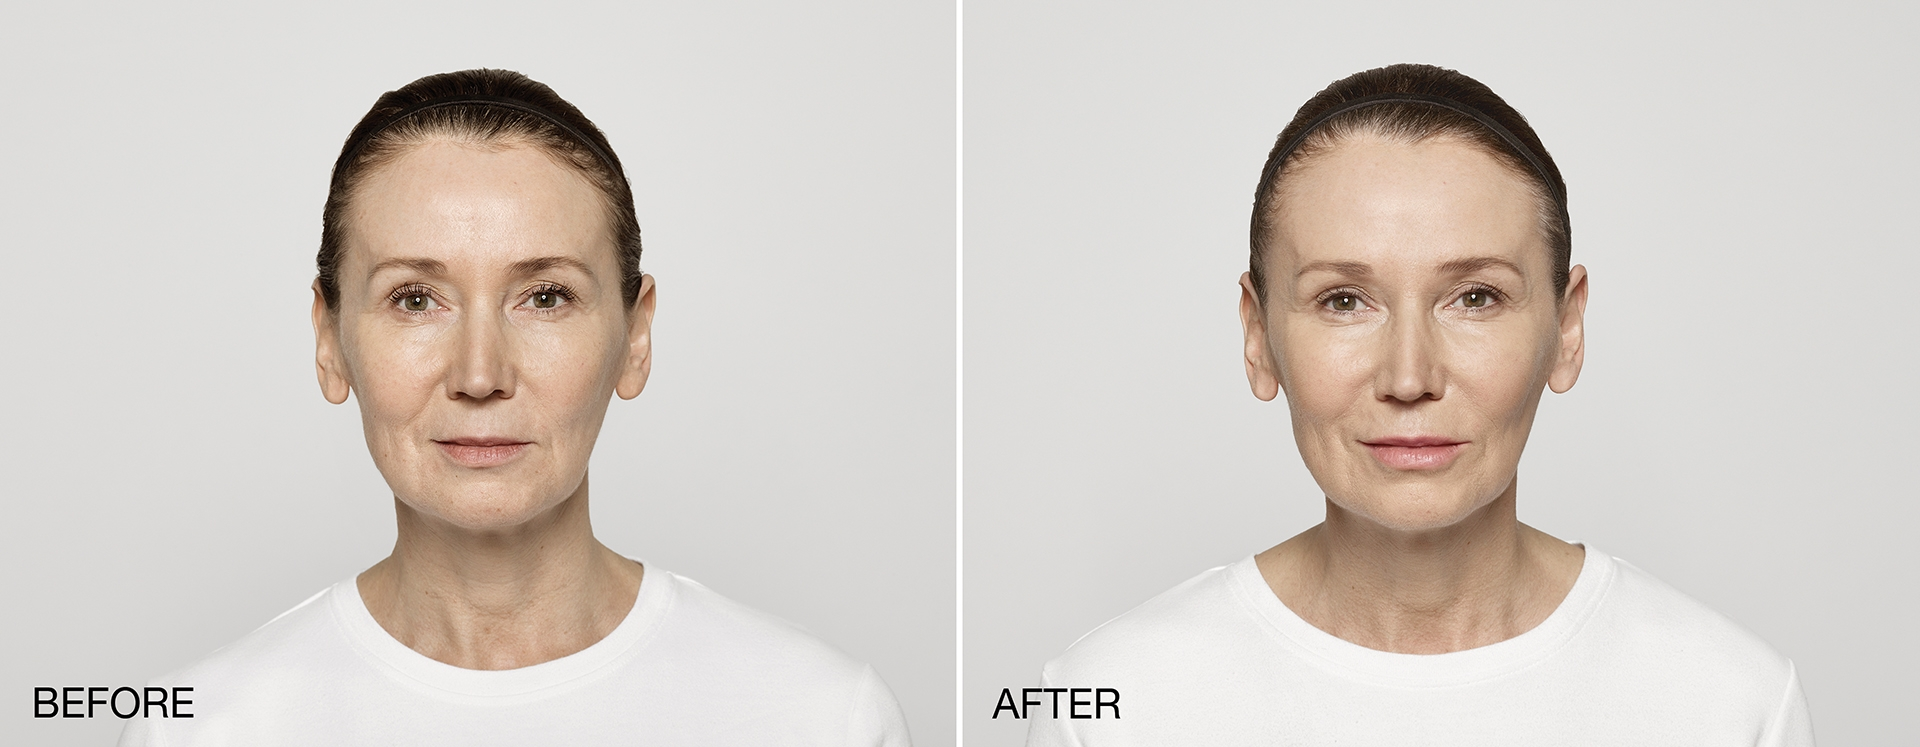 Restylane® Lyft - Restylane®Lyft is approved by the FDA for cheek augmentationand the correction of age-related midface contour deficiencies inpatients over the age of 21. This is in addition to treatingmoderate to severe facial wrinkles and folds, such as nasolabial folds(smile lines).